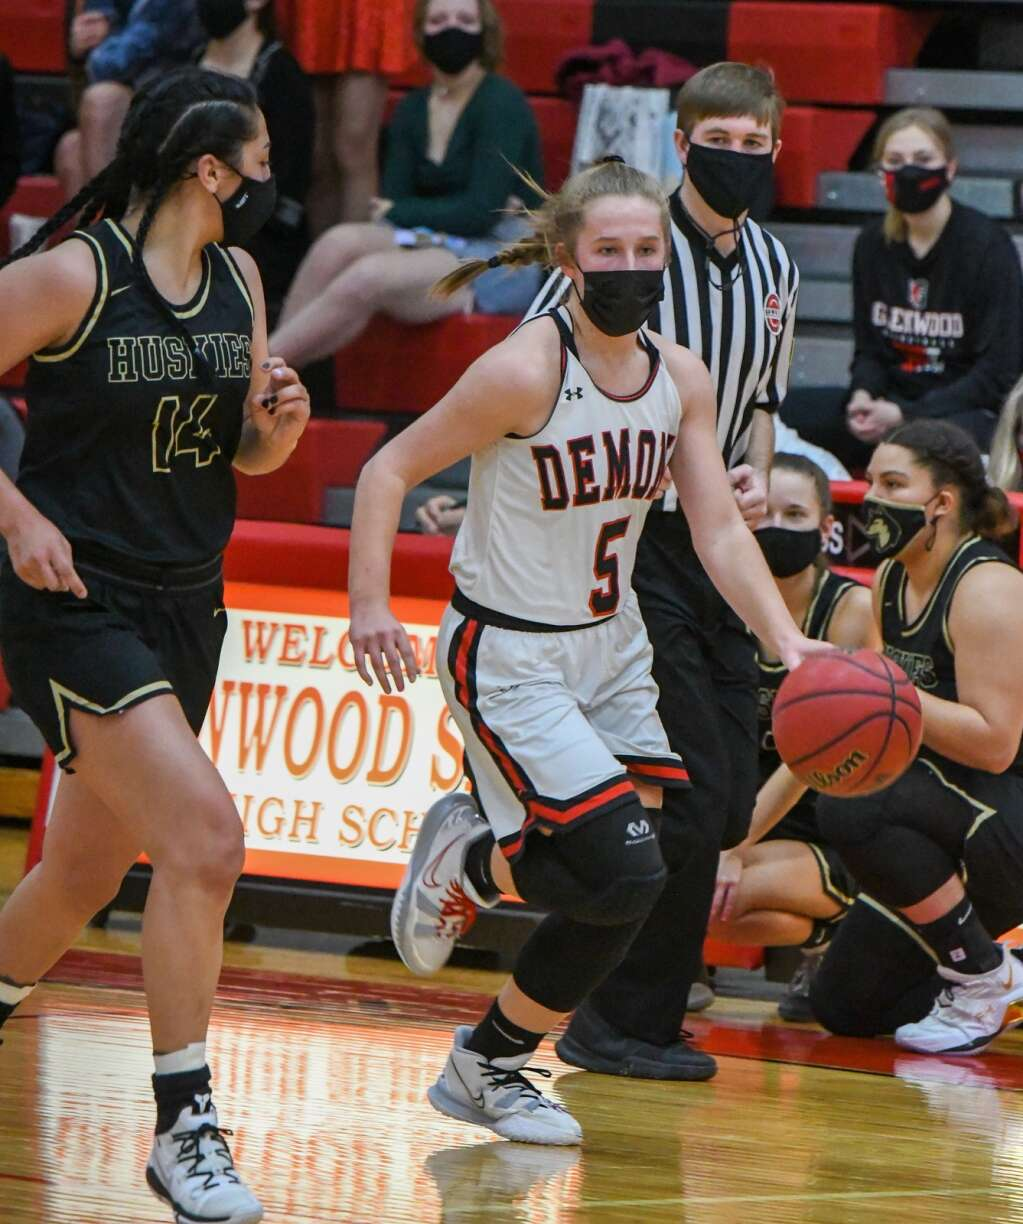 Glenwood Springs Demon Kenzie Winder dribbles the ball around the defending Battle Mountain Husky during Thursday night's game at Glenwood Springs High School. | Chelsea Self / Post Independent